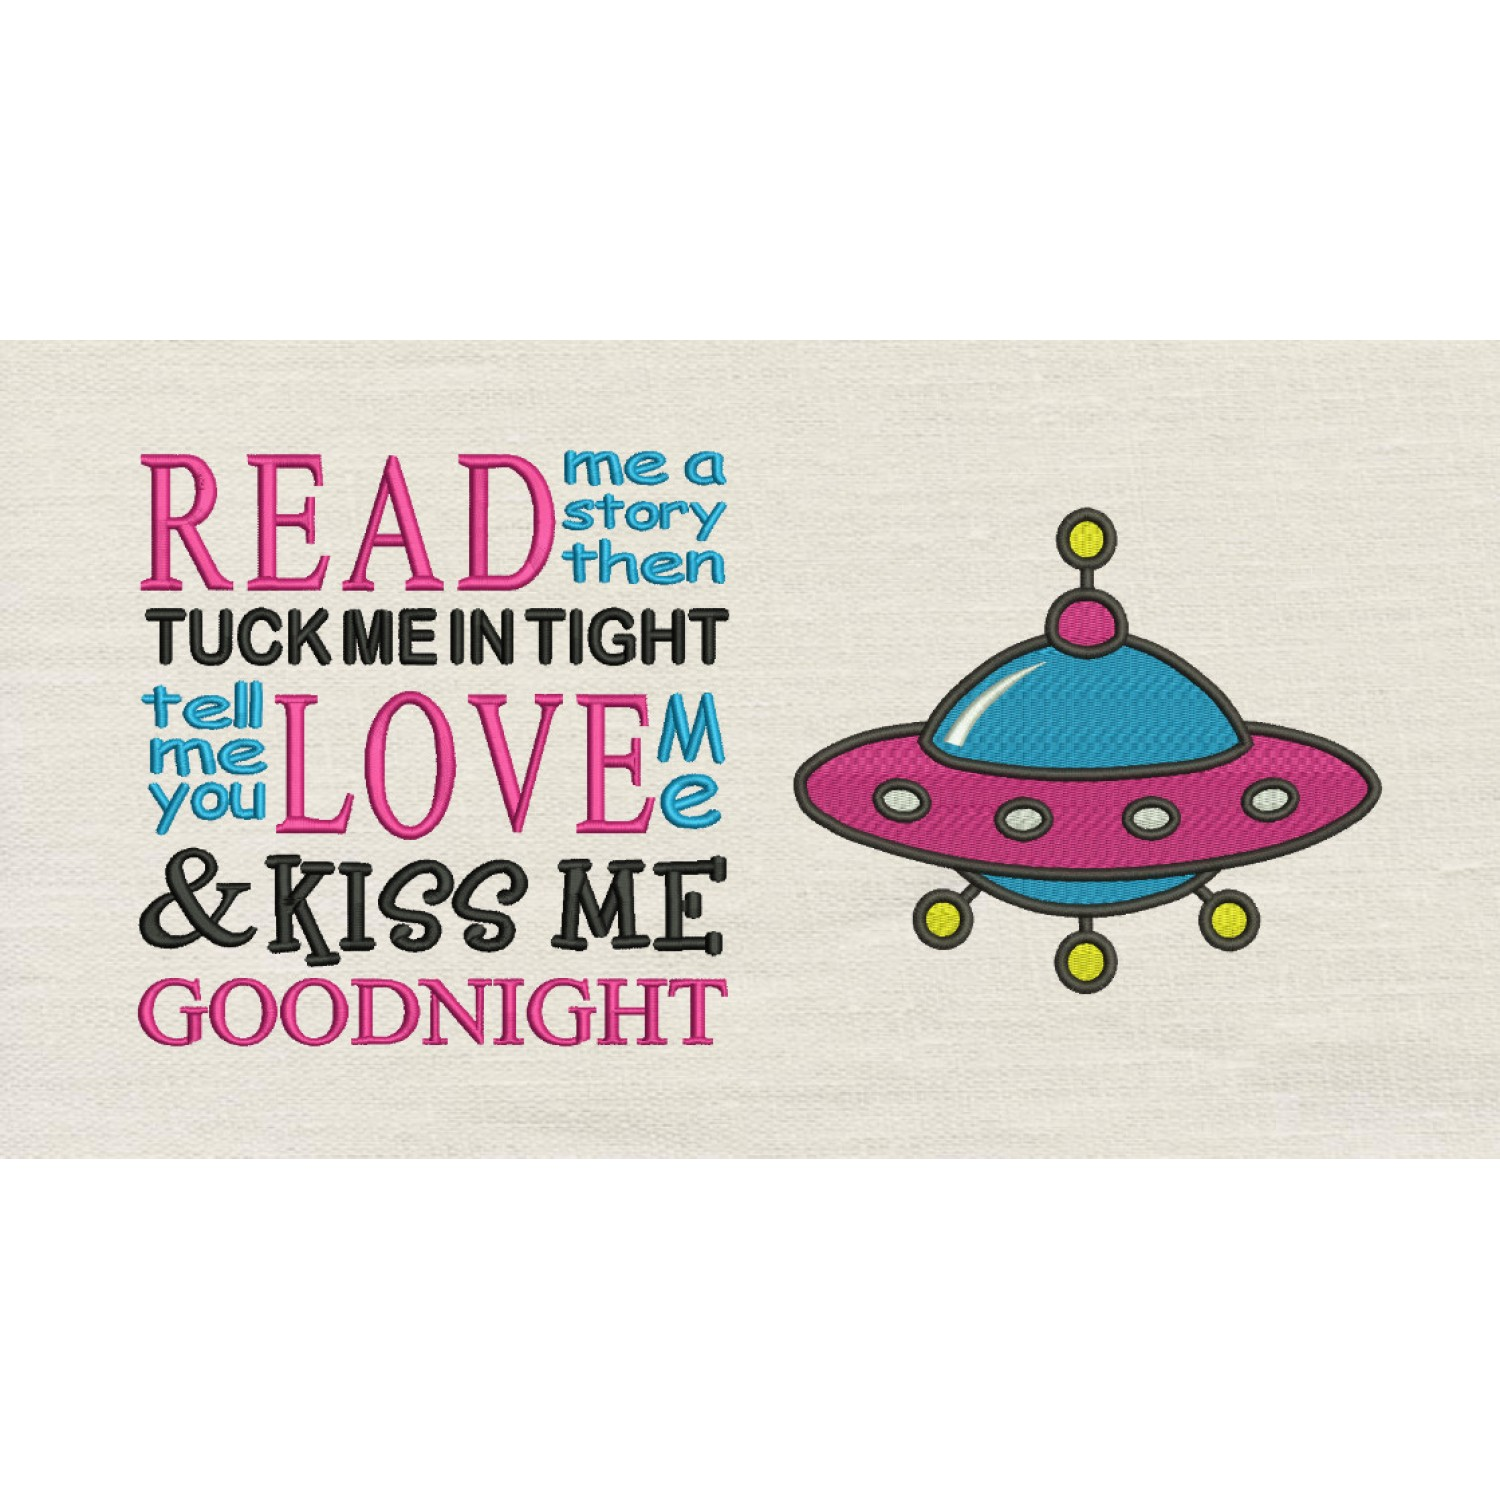 Space ship with read me a story